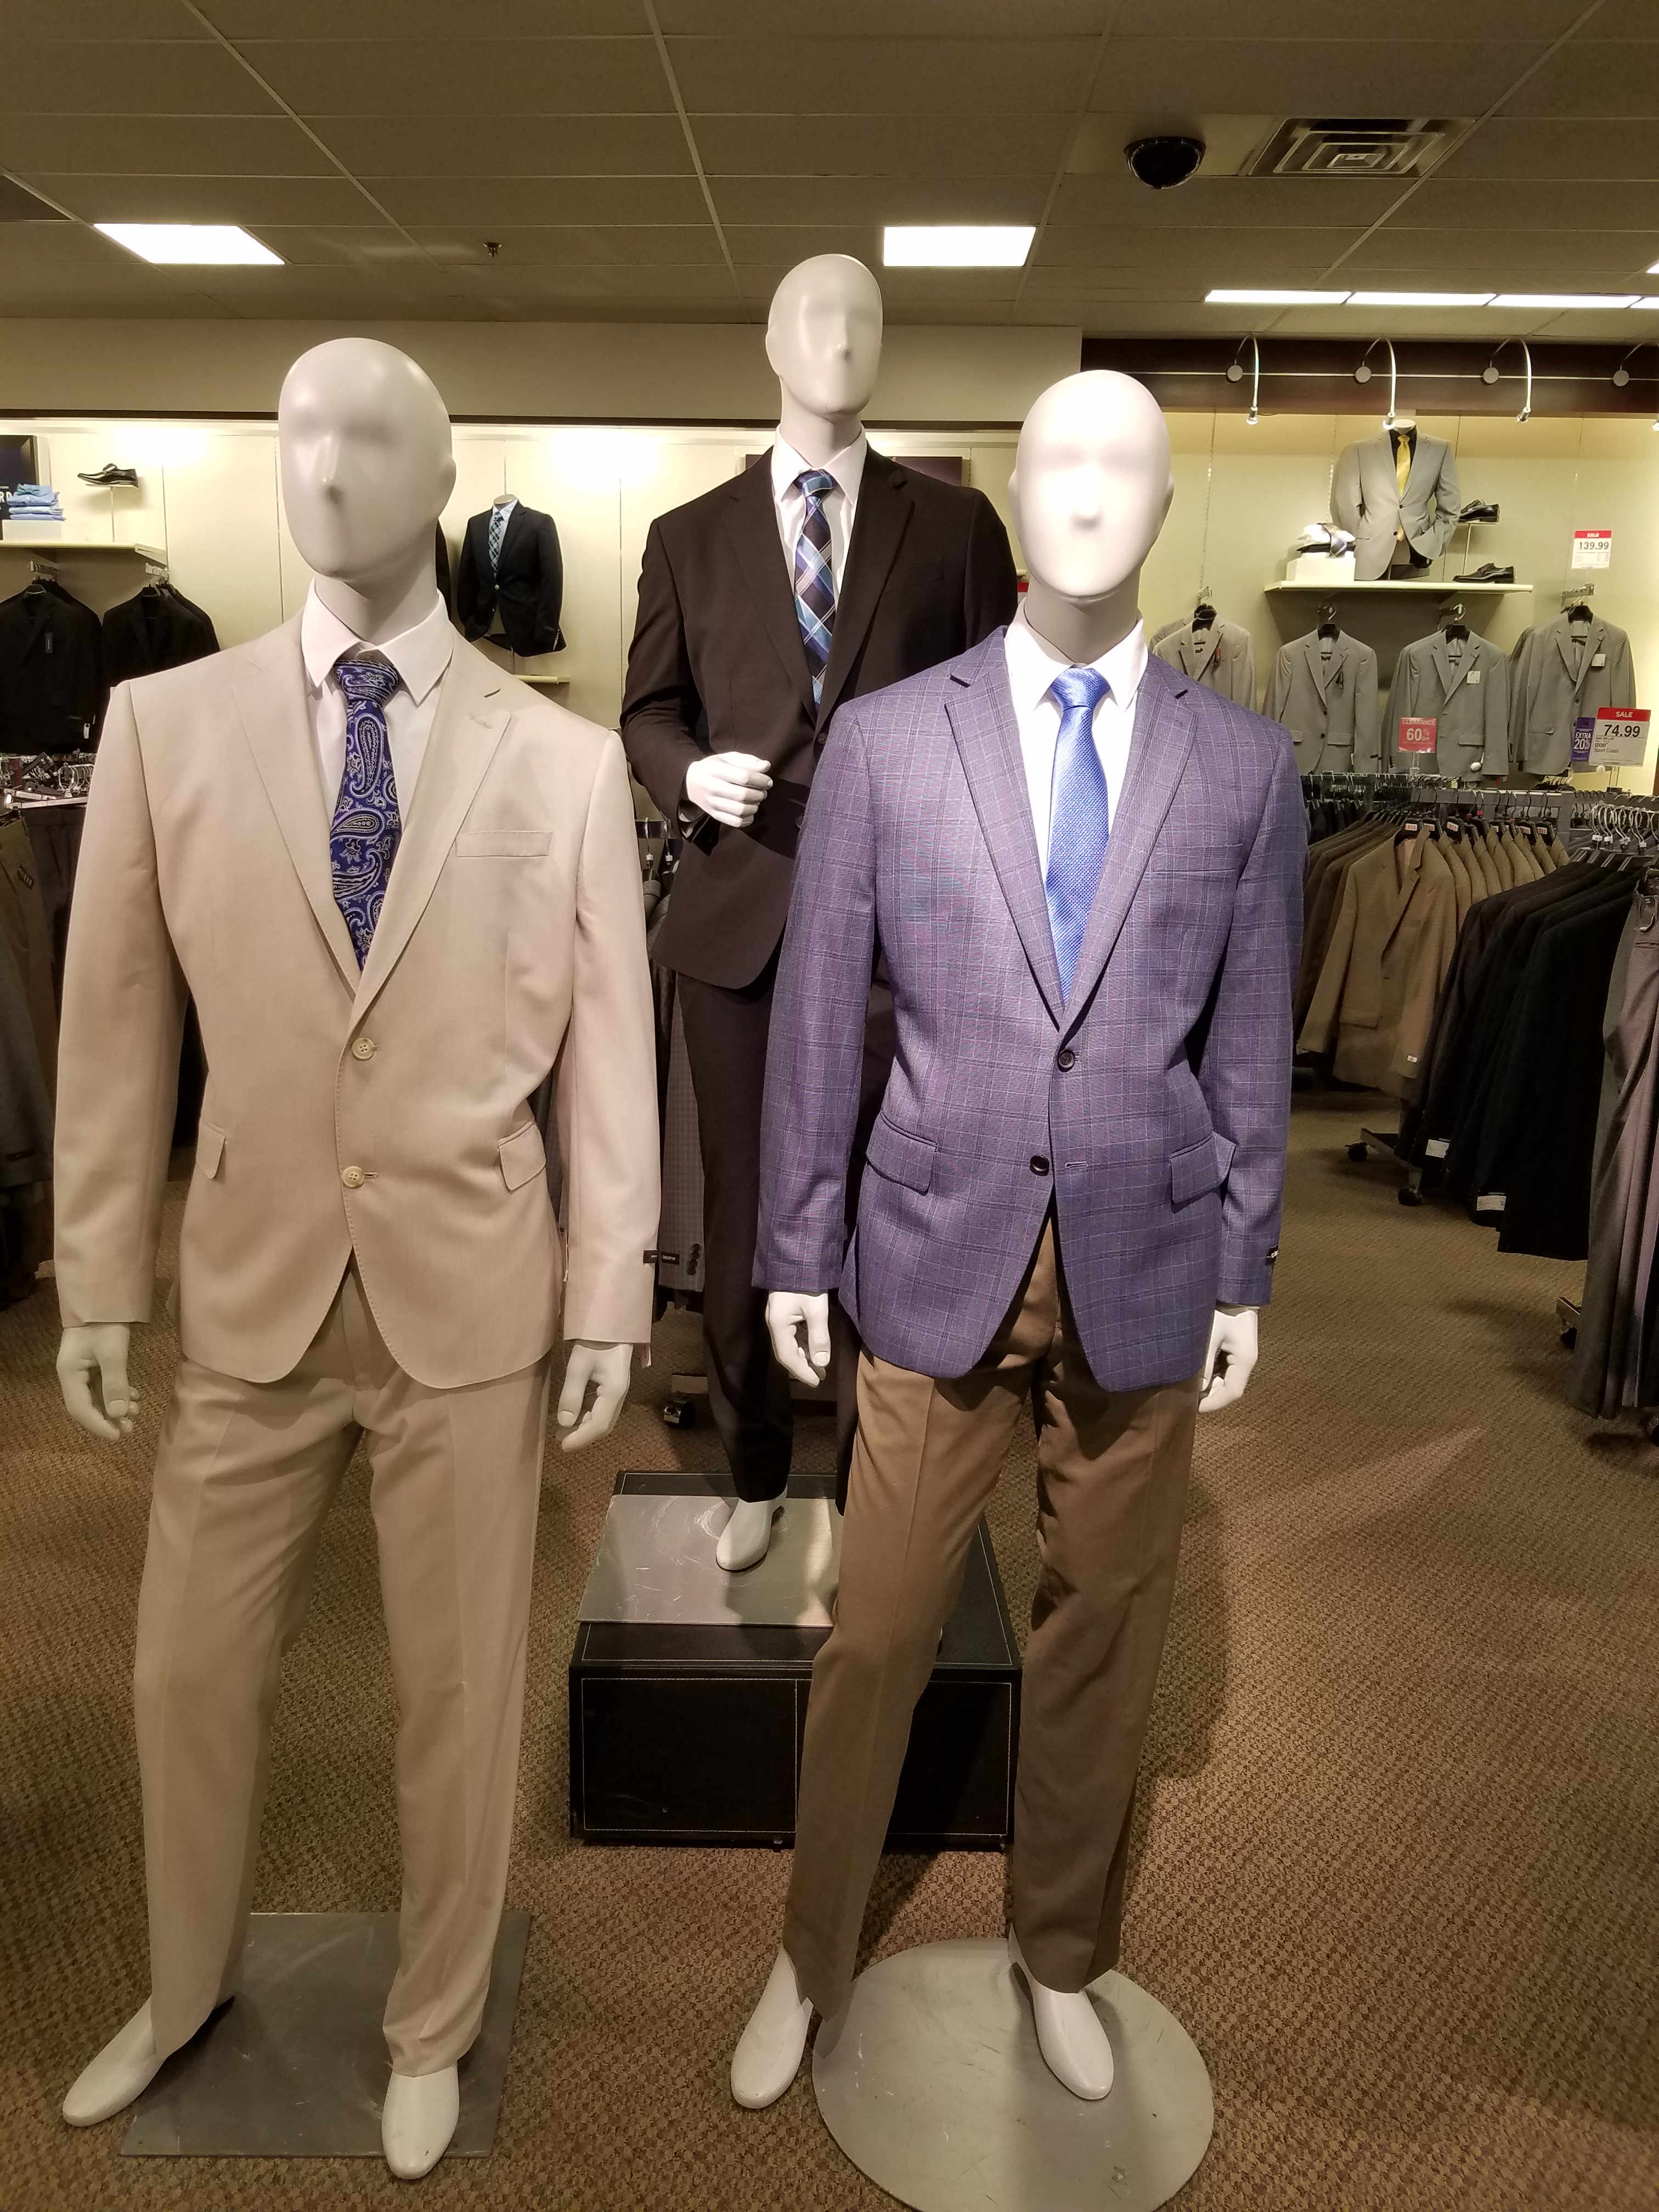 Fashion For Short Men: Blazers and Suit Jackets at JC Penny | ShortGuyCentral